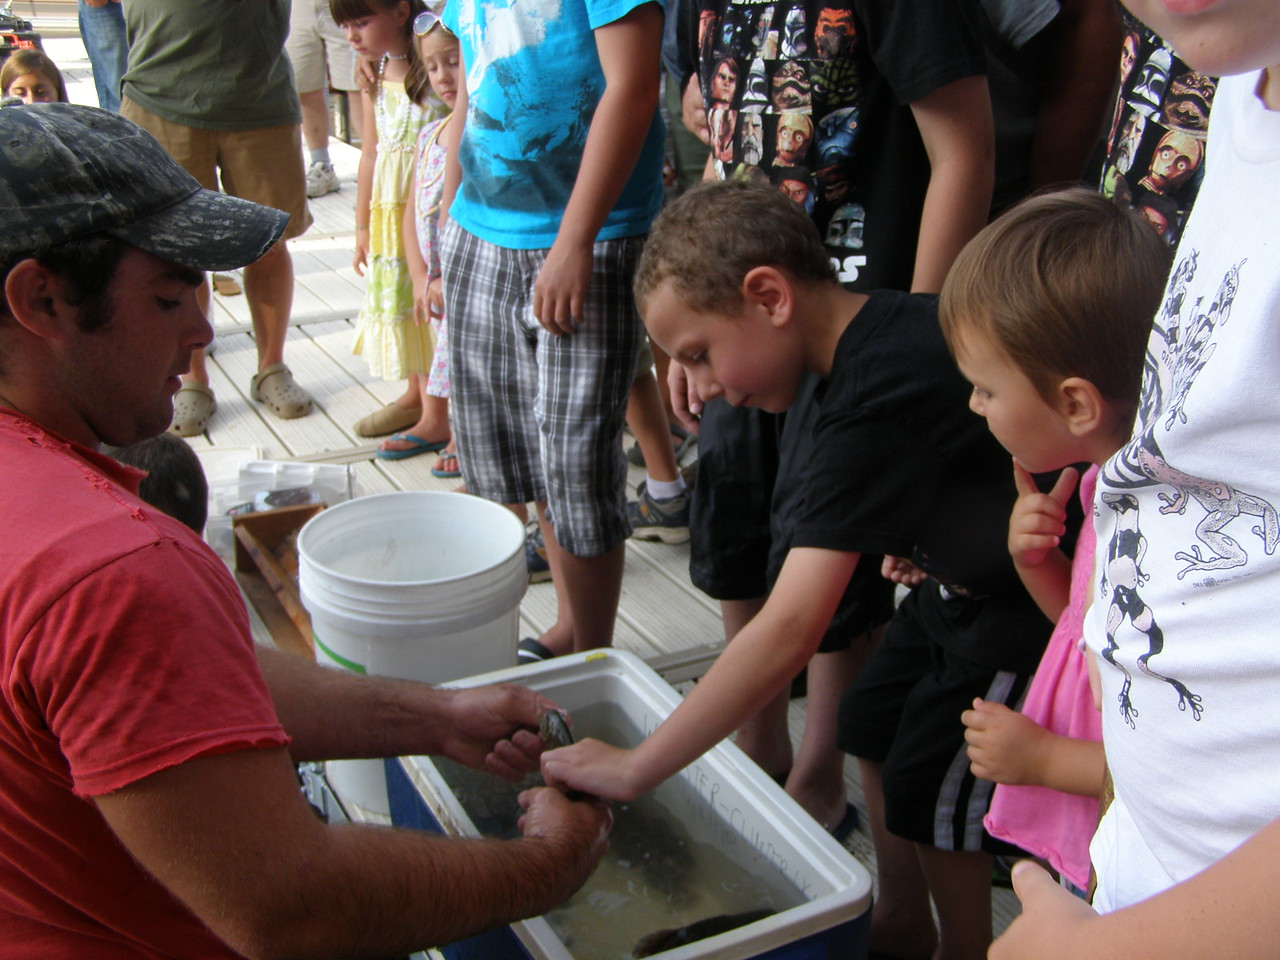 Kids get a chance to feel the fish before they're released back into the lake.